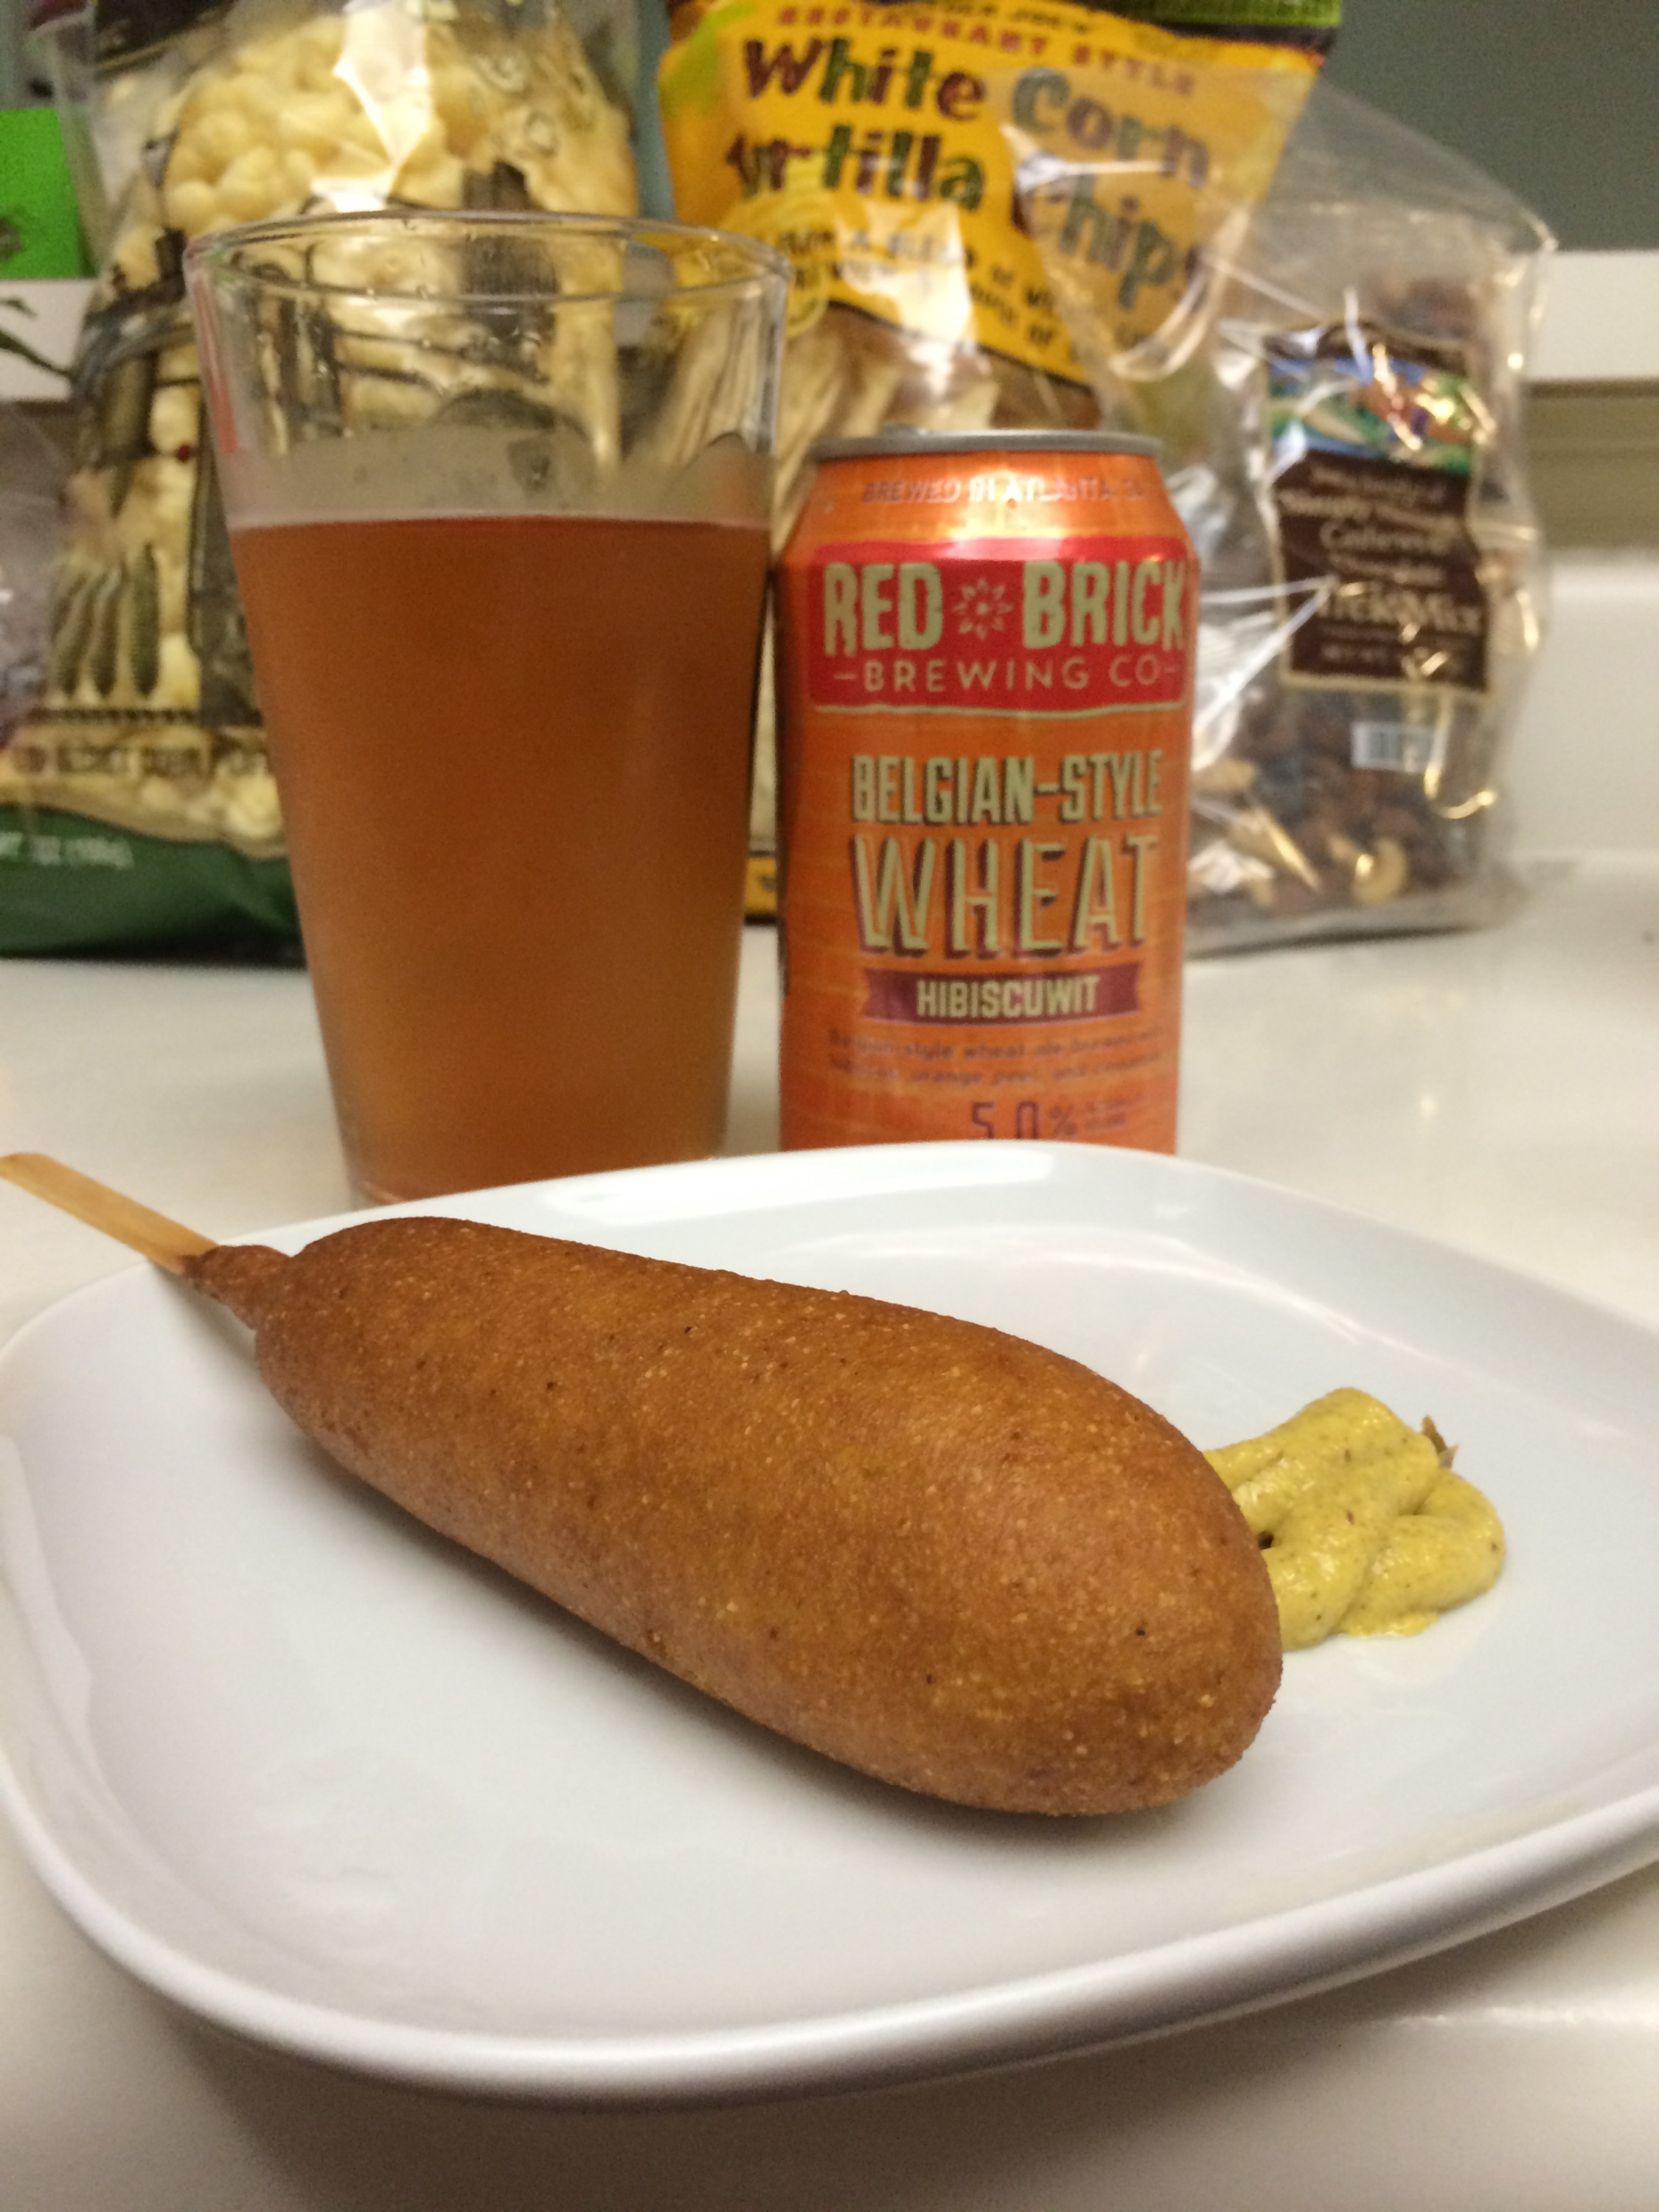 Summer in a photo (IE Corn Dogs and Beer)